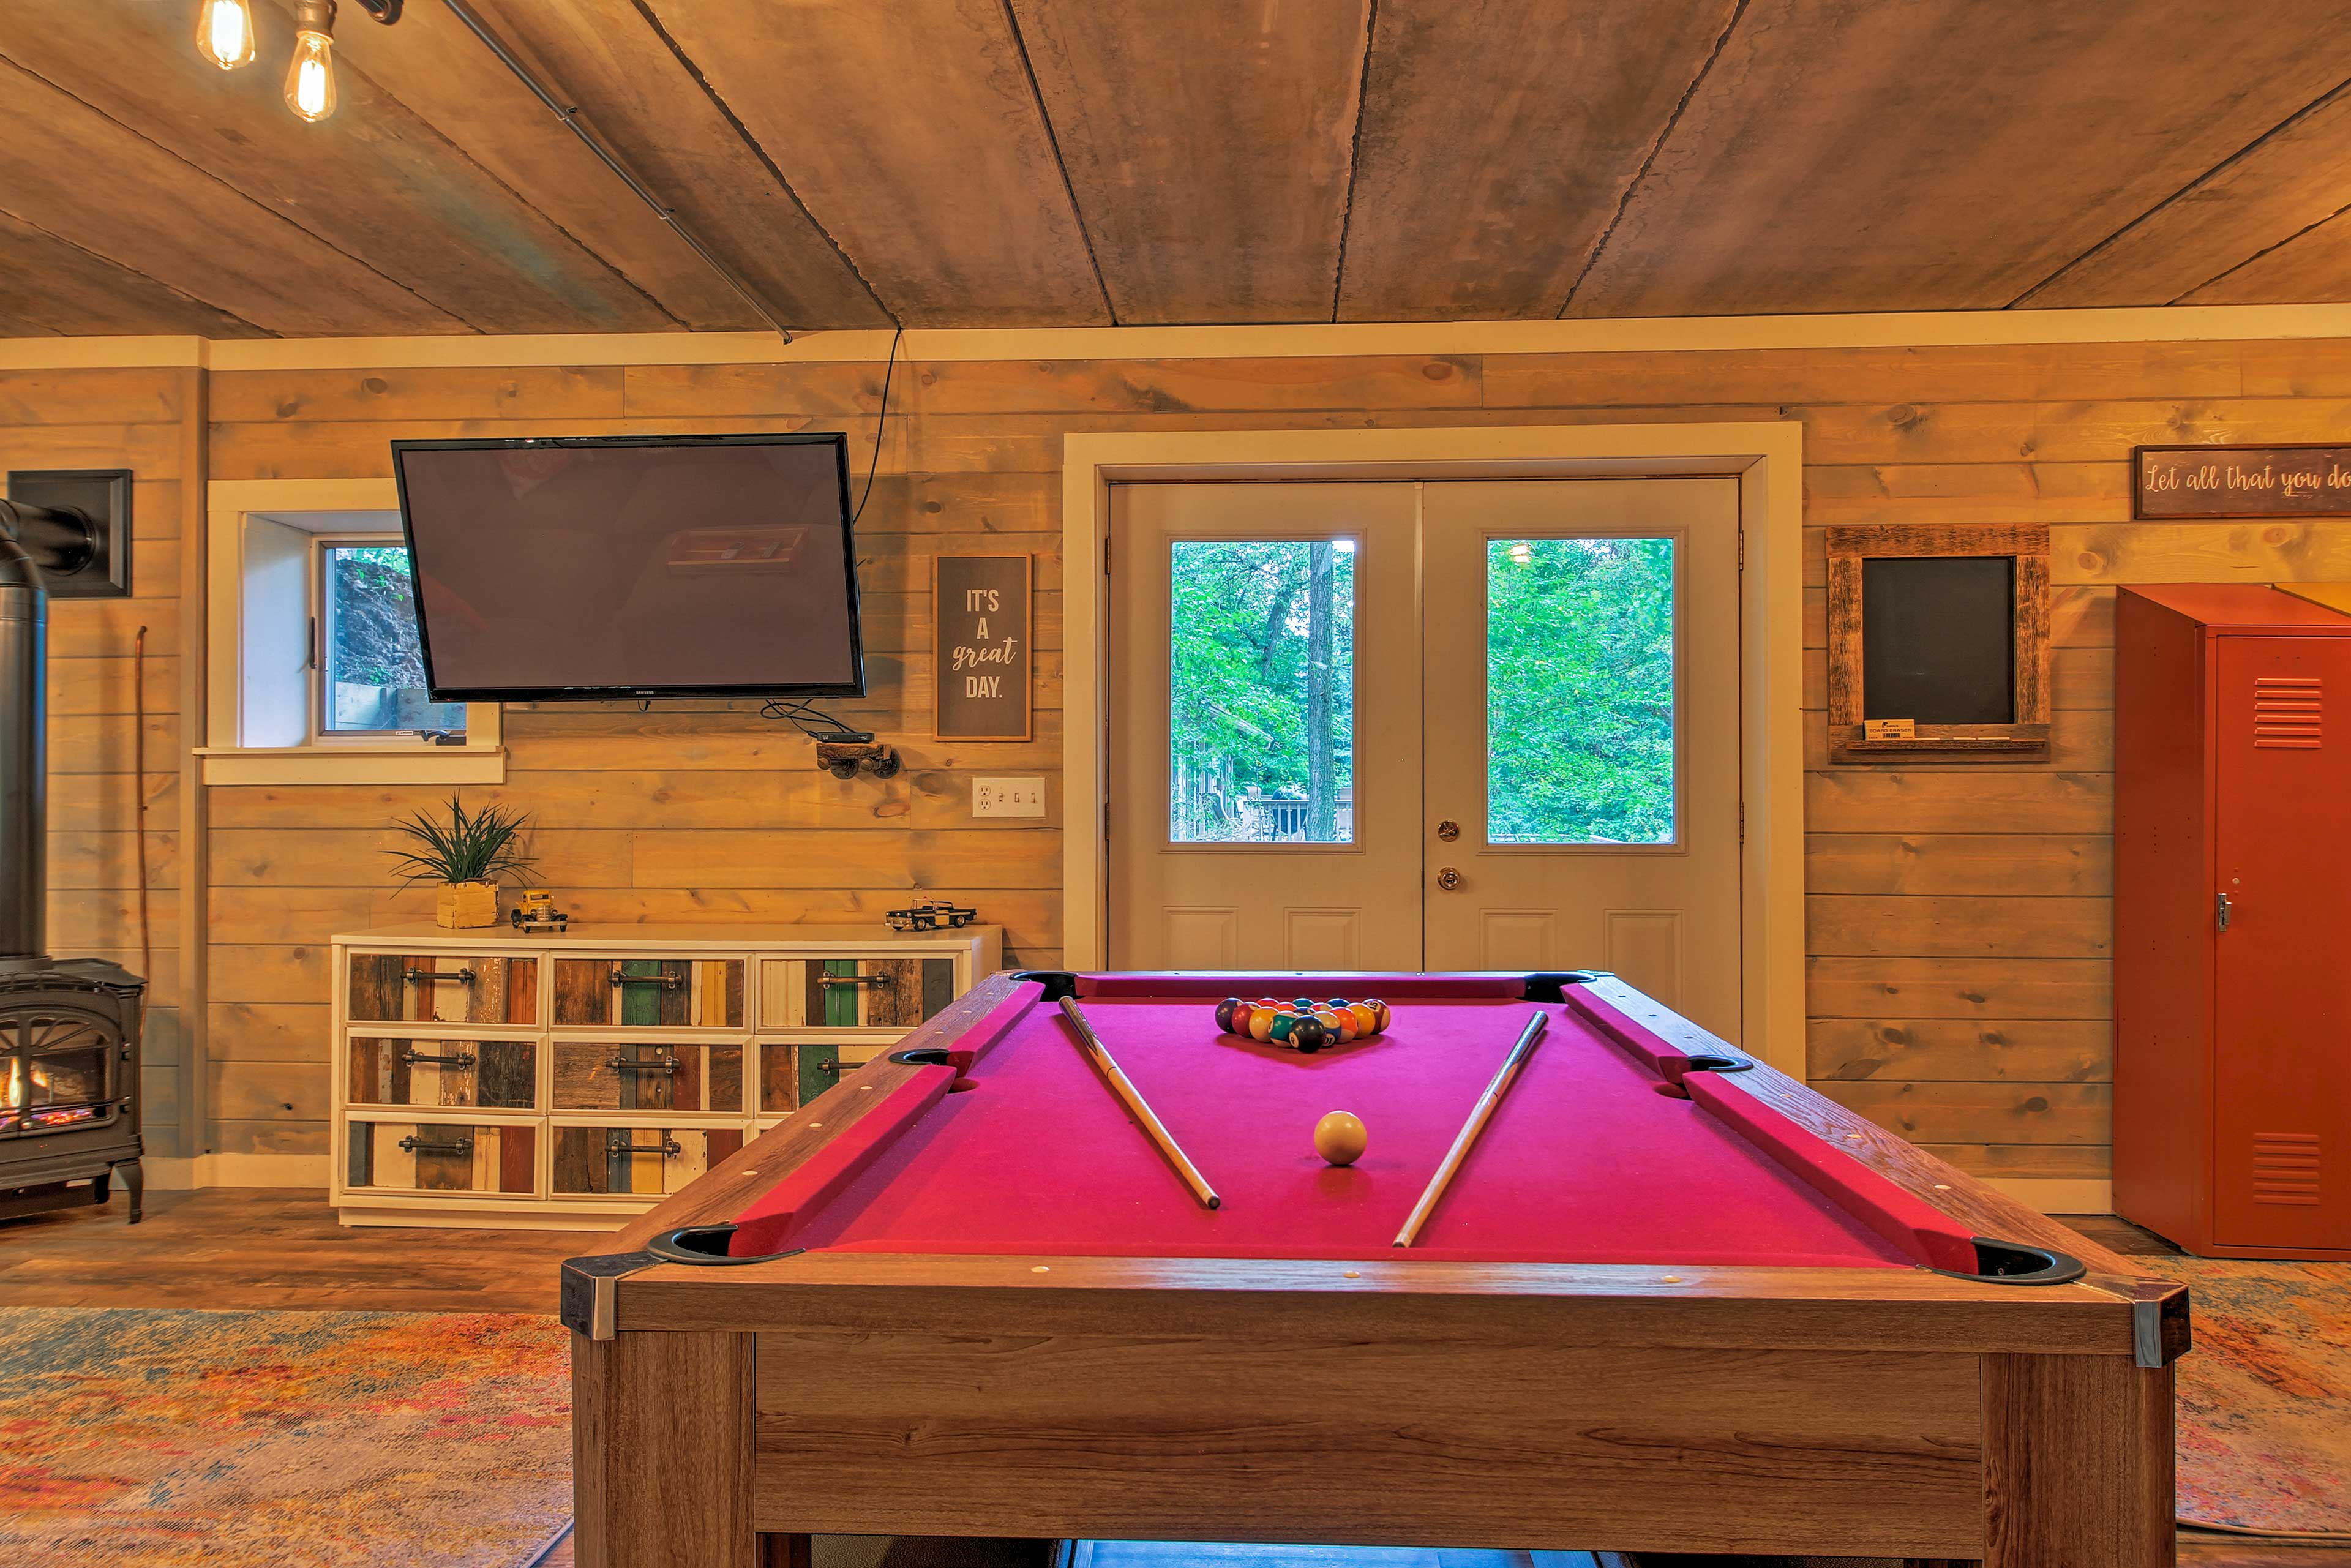 Challenge a friend to a quick round of pool.